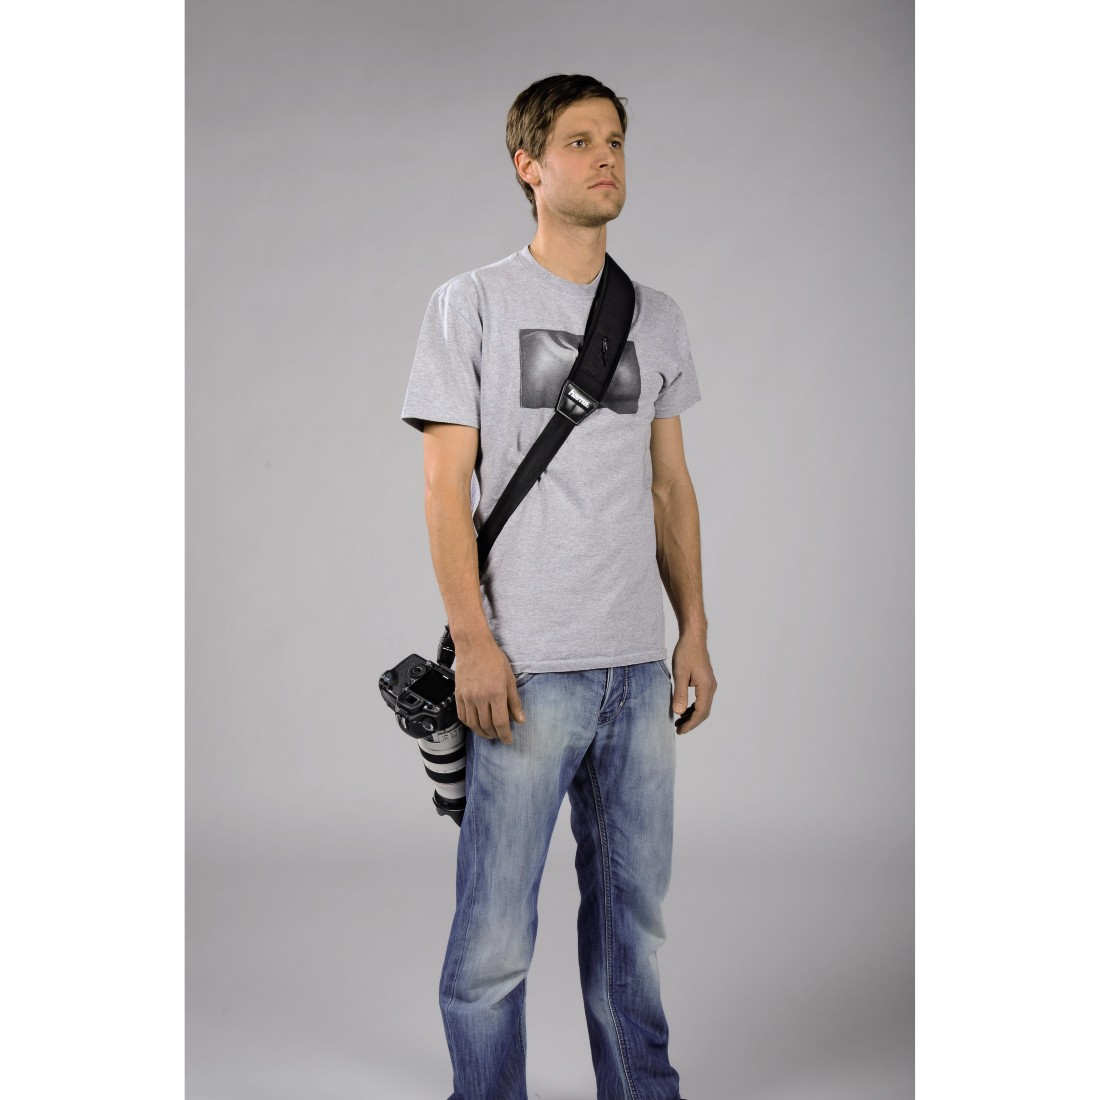 awx4 High-Res Appliance 4 - Hama, Quick Shoot Strap Carrying Strap for SLR Cameras